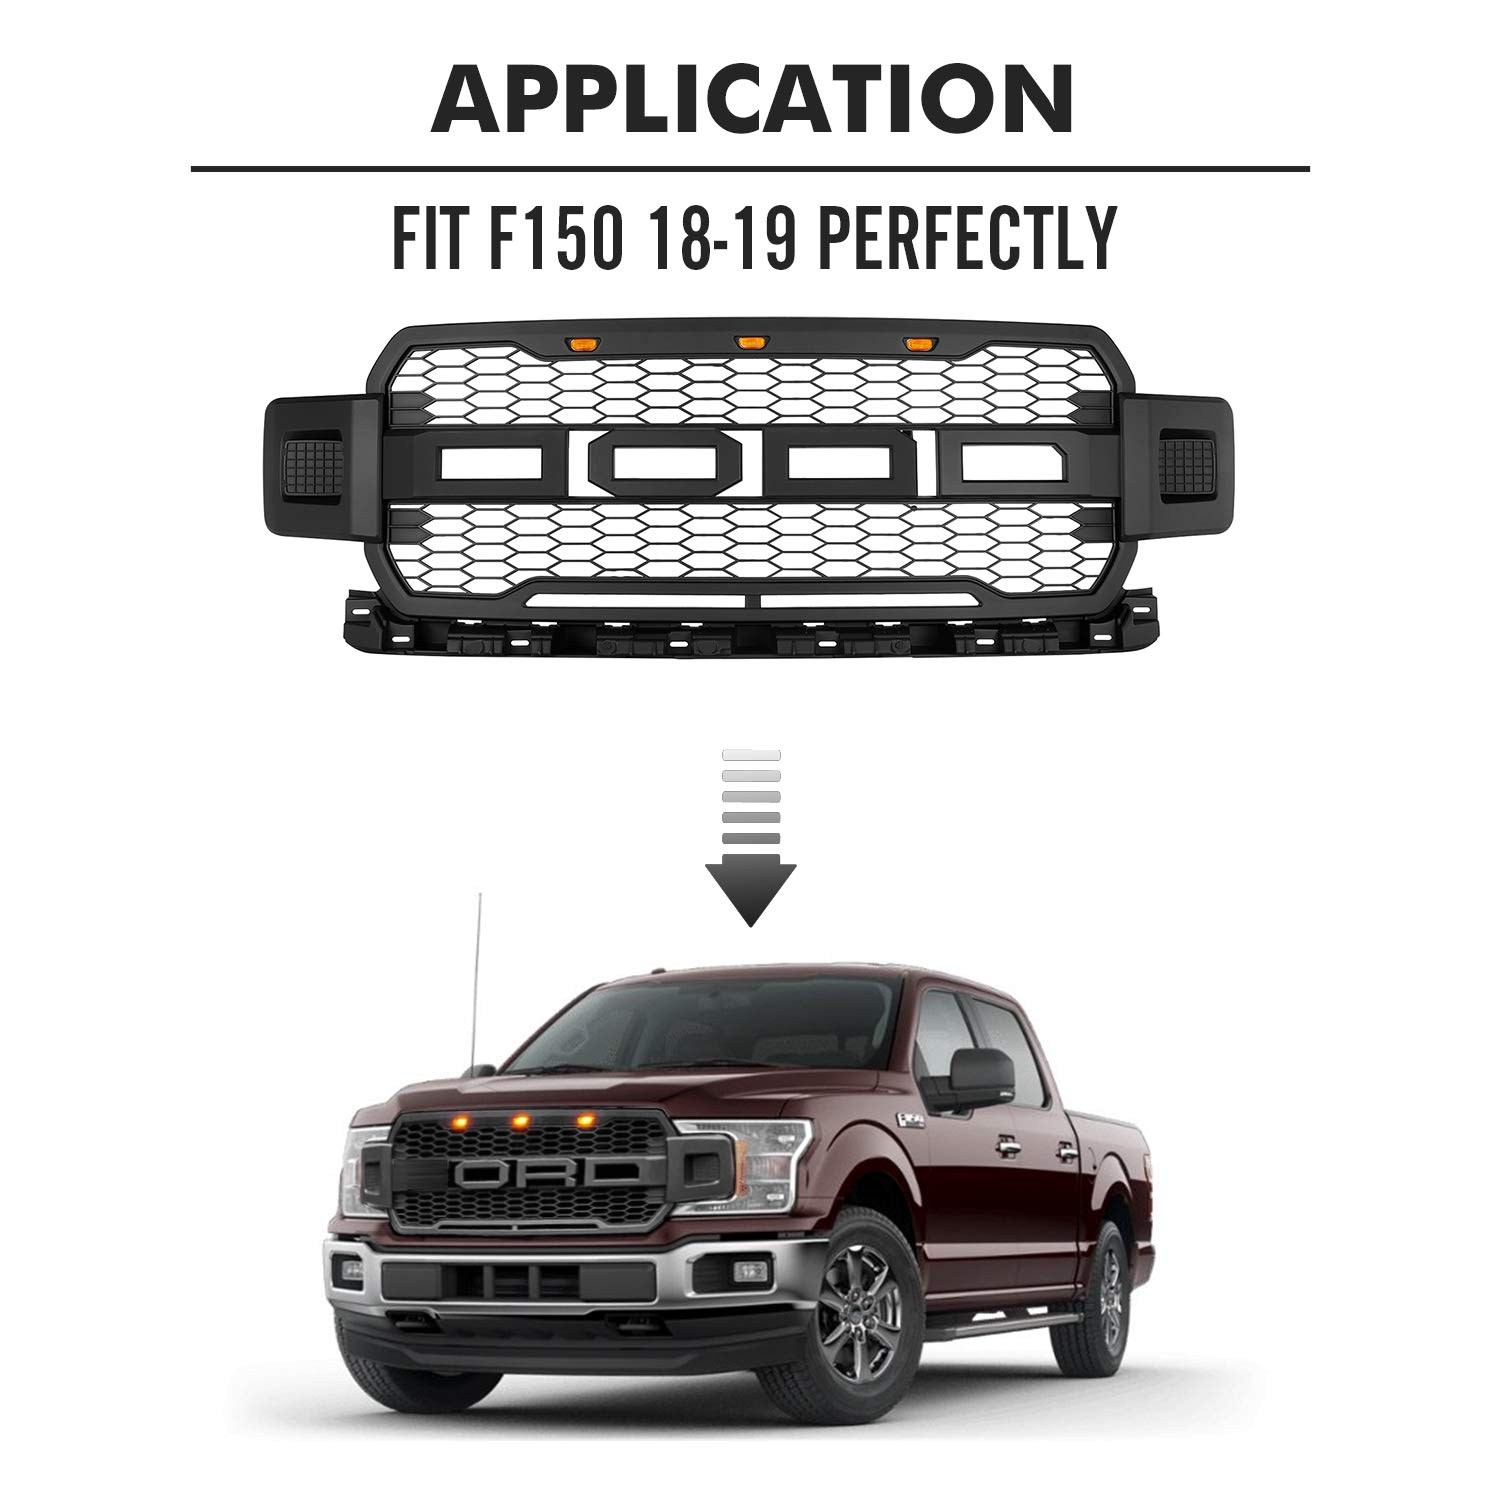 Raptor Style Grill for Ford Matte Black Seven Sparta Front Grill for F150 2018 2019